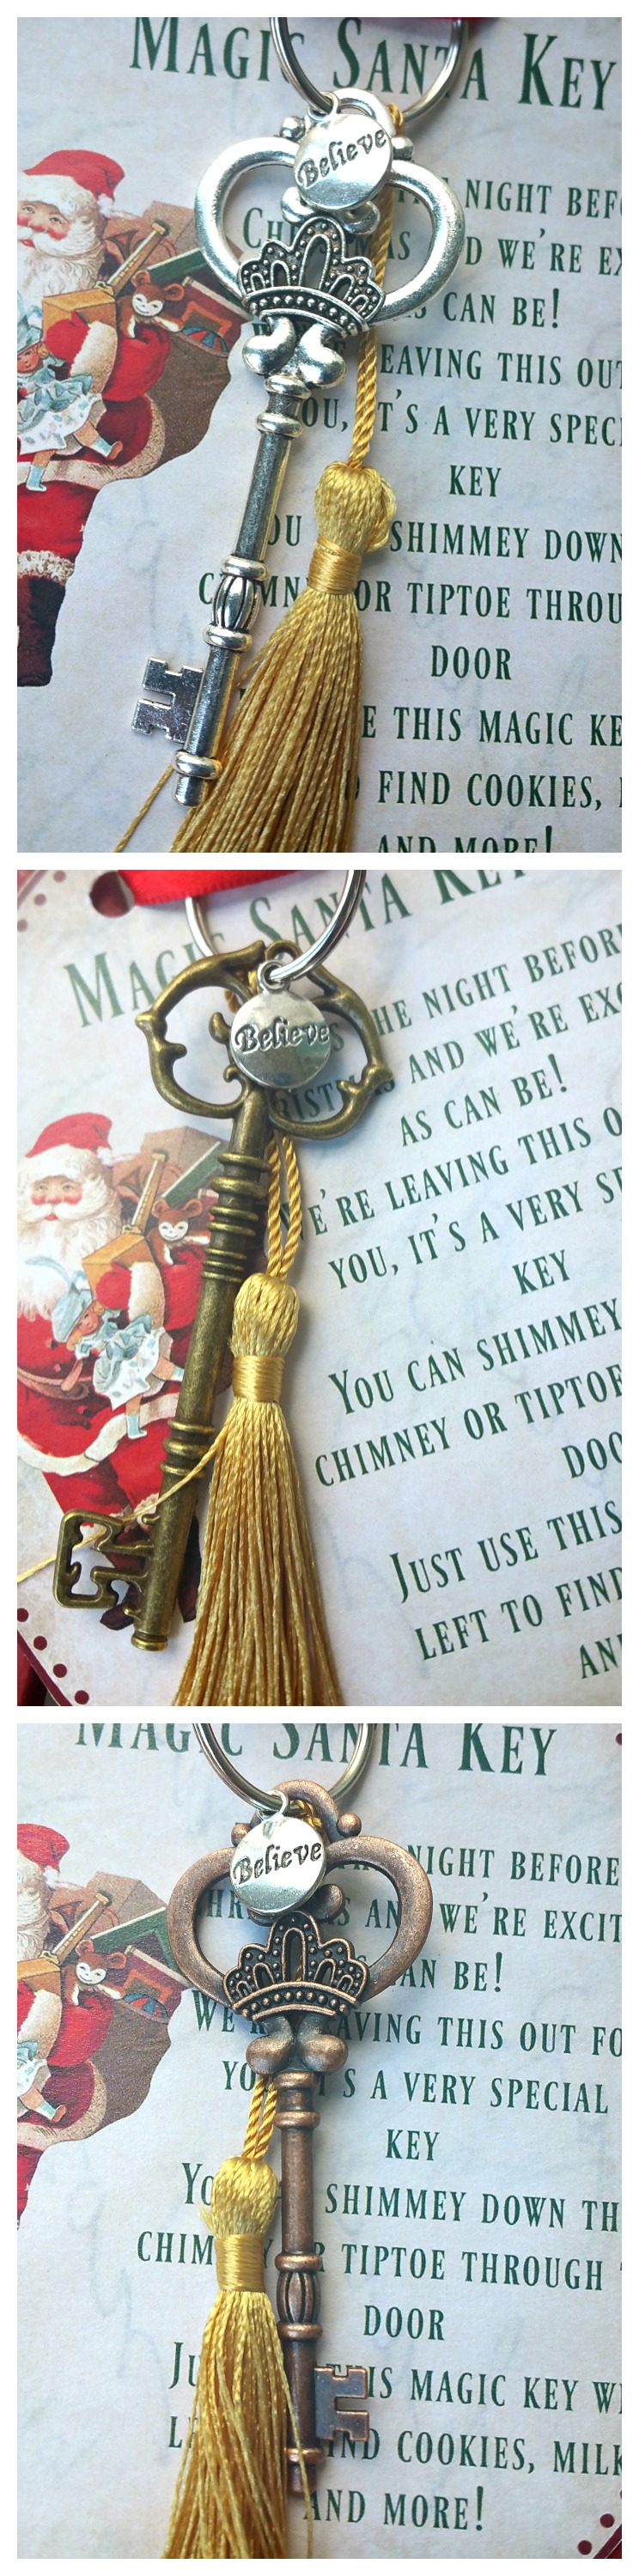 Create your own Magic Santa Key with FREE printable poem